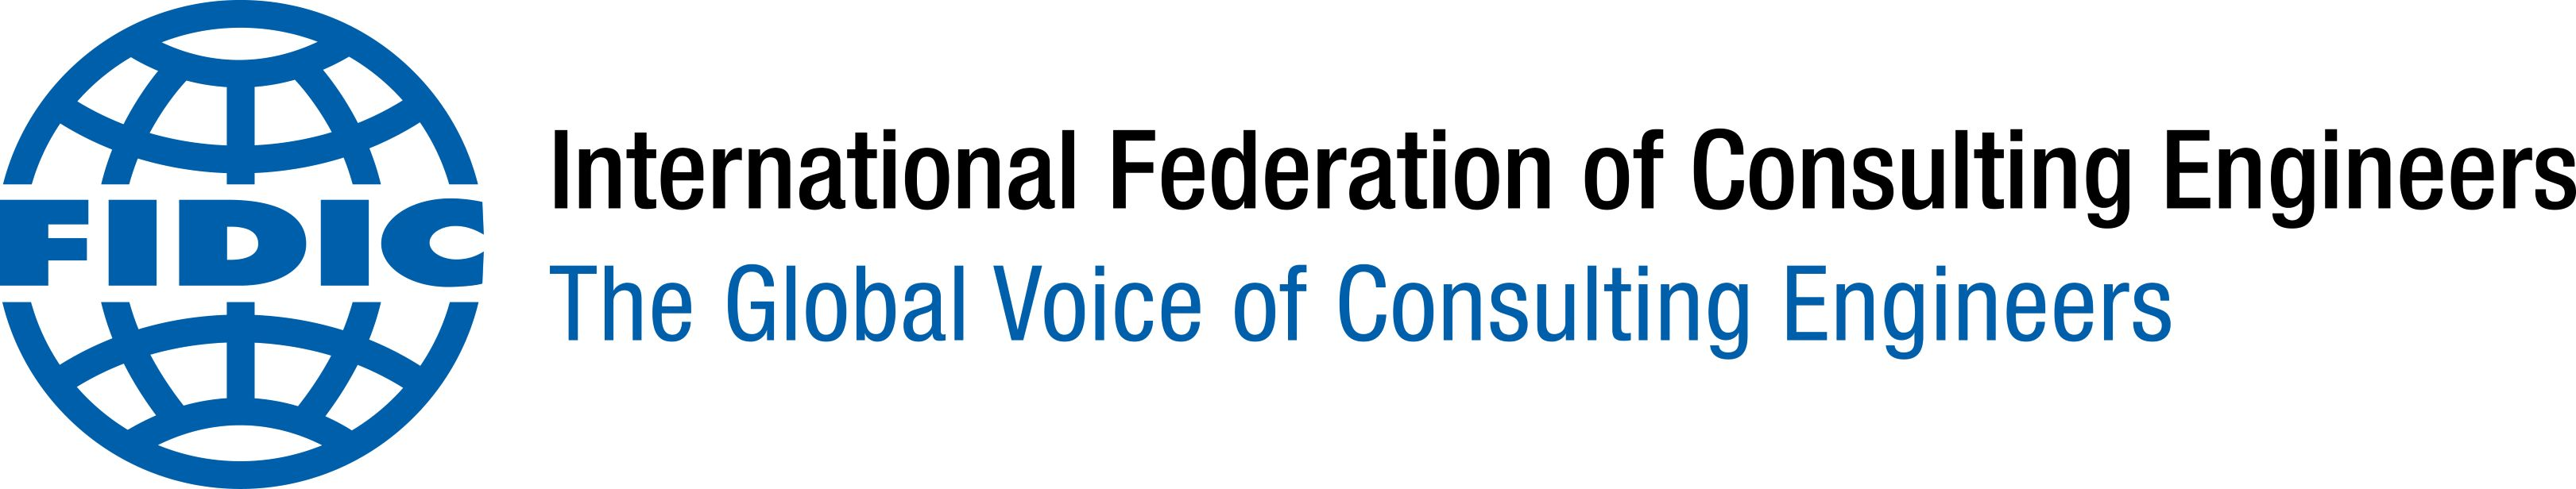 International Federation of Consulting Engineers   FIDIC